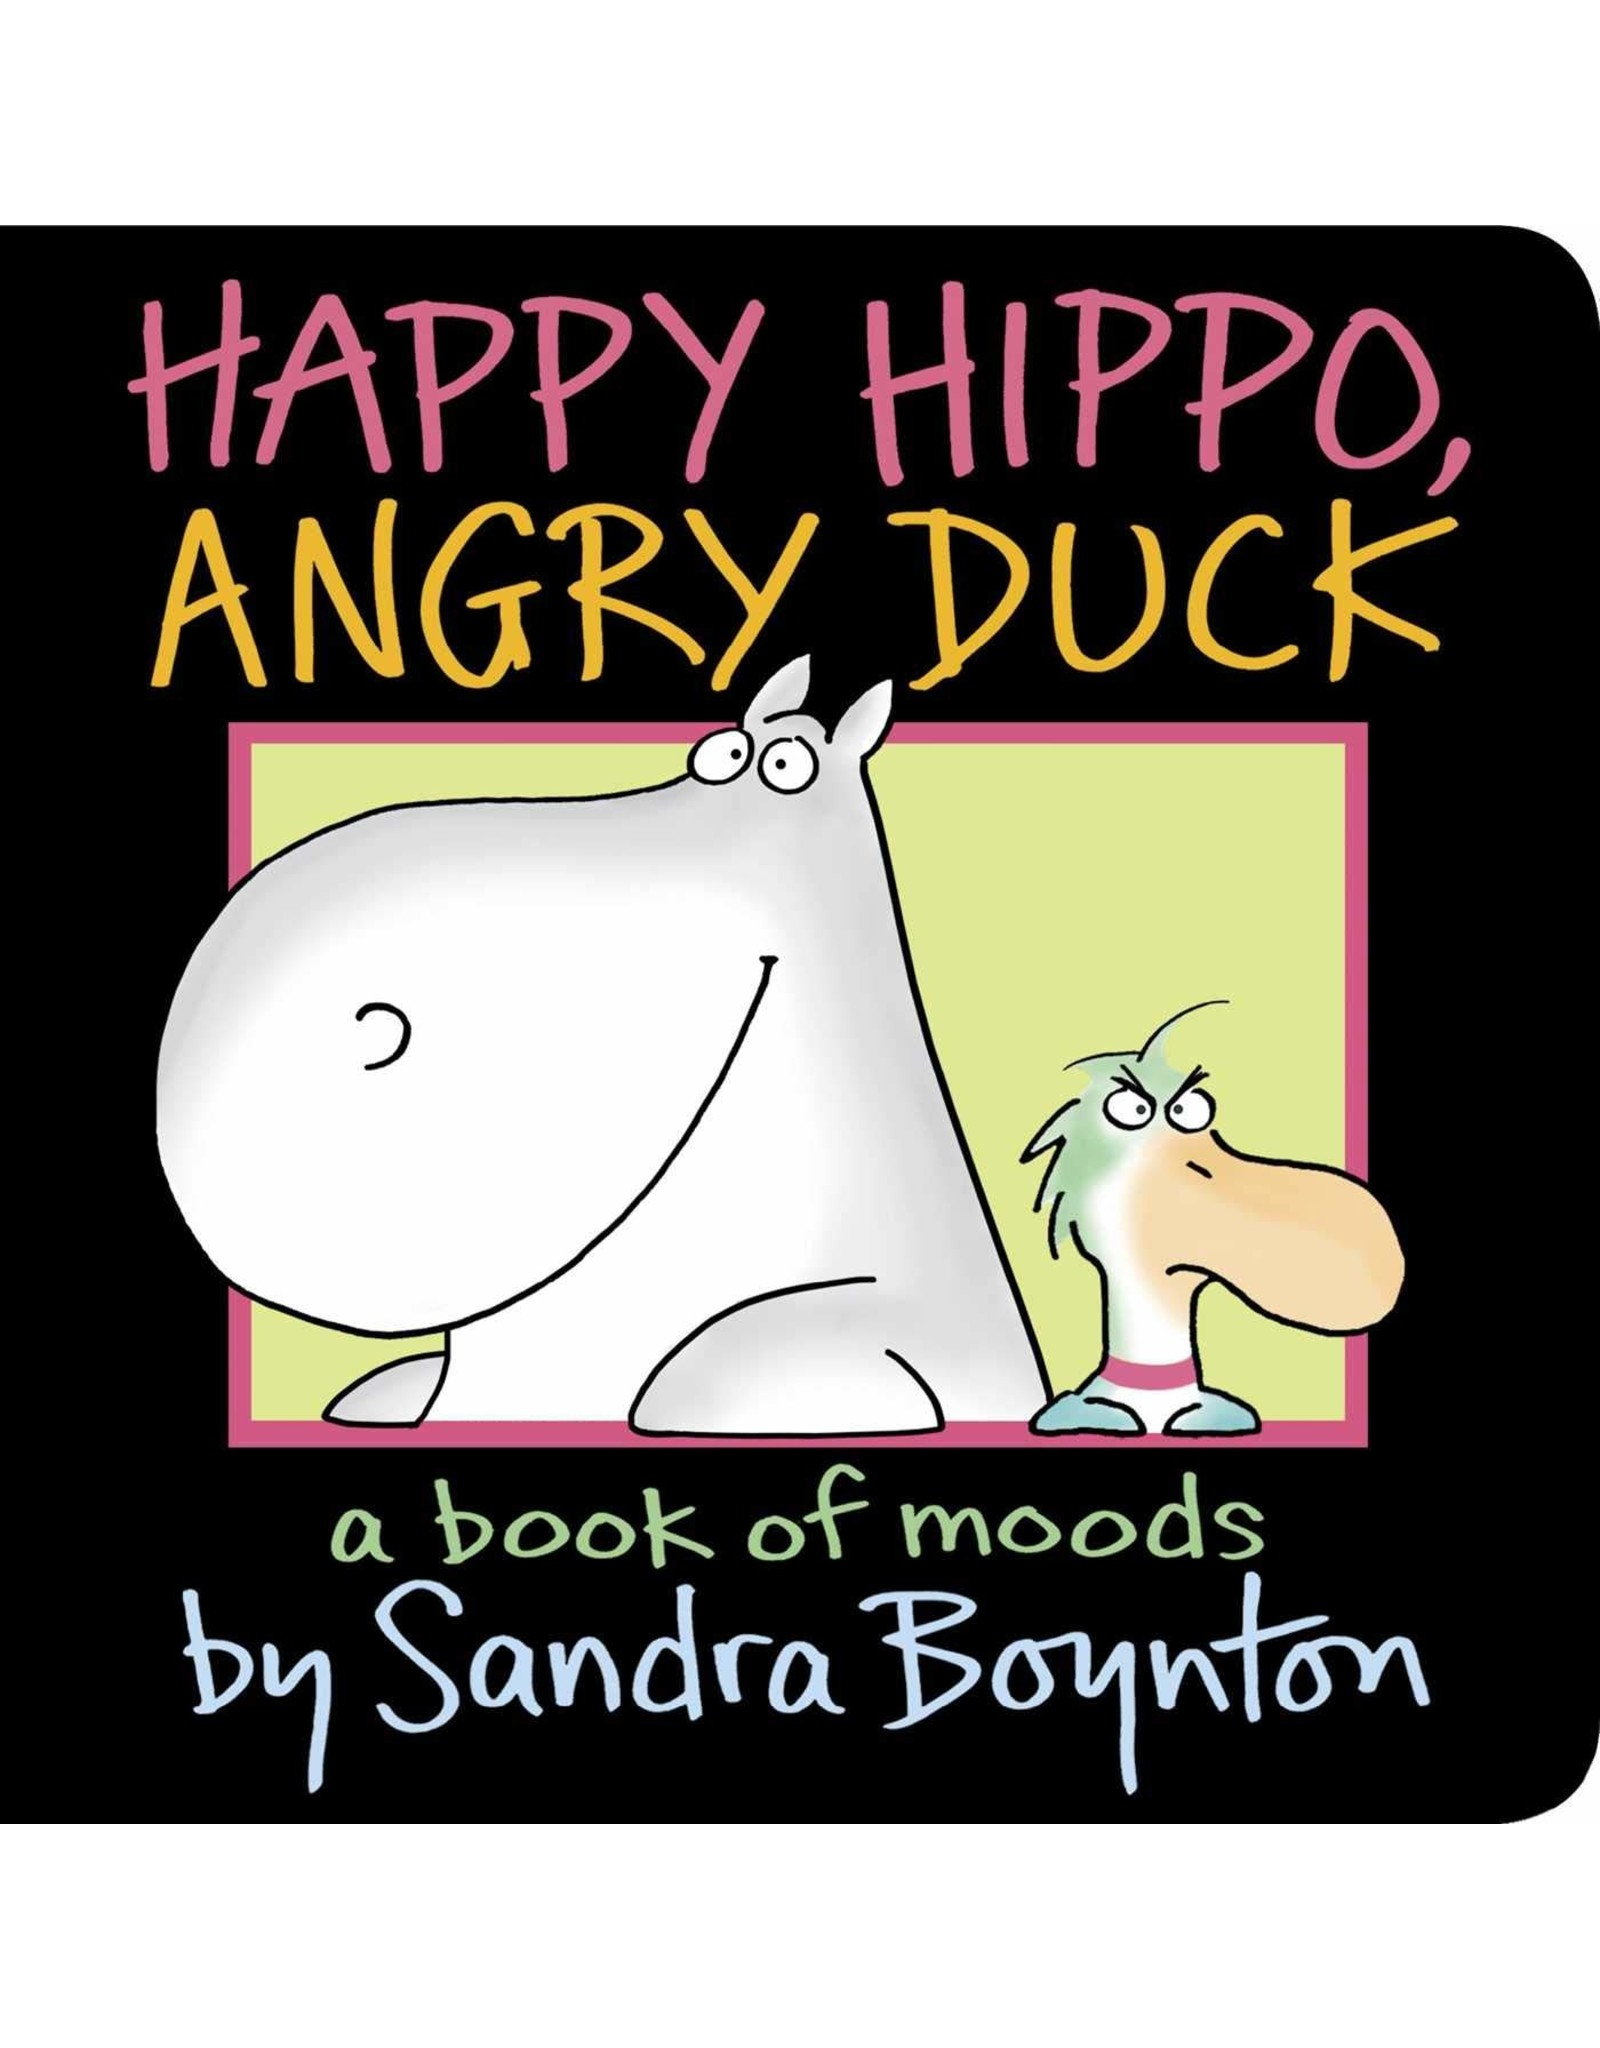 SIMON & SCHUSTER HAPPY HIPPO ANGRY DUCK BOOK OF MOODS BOARD BOOK